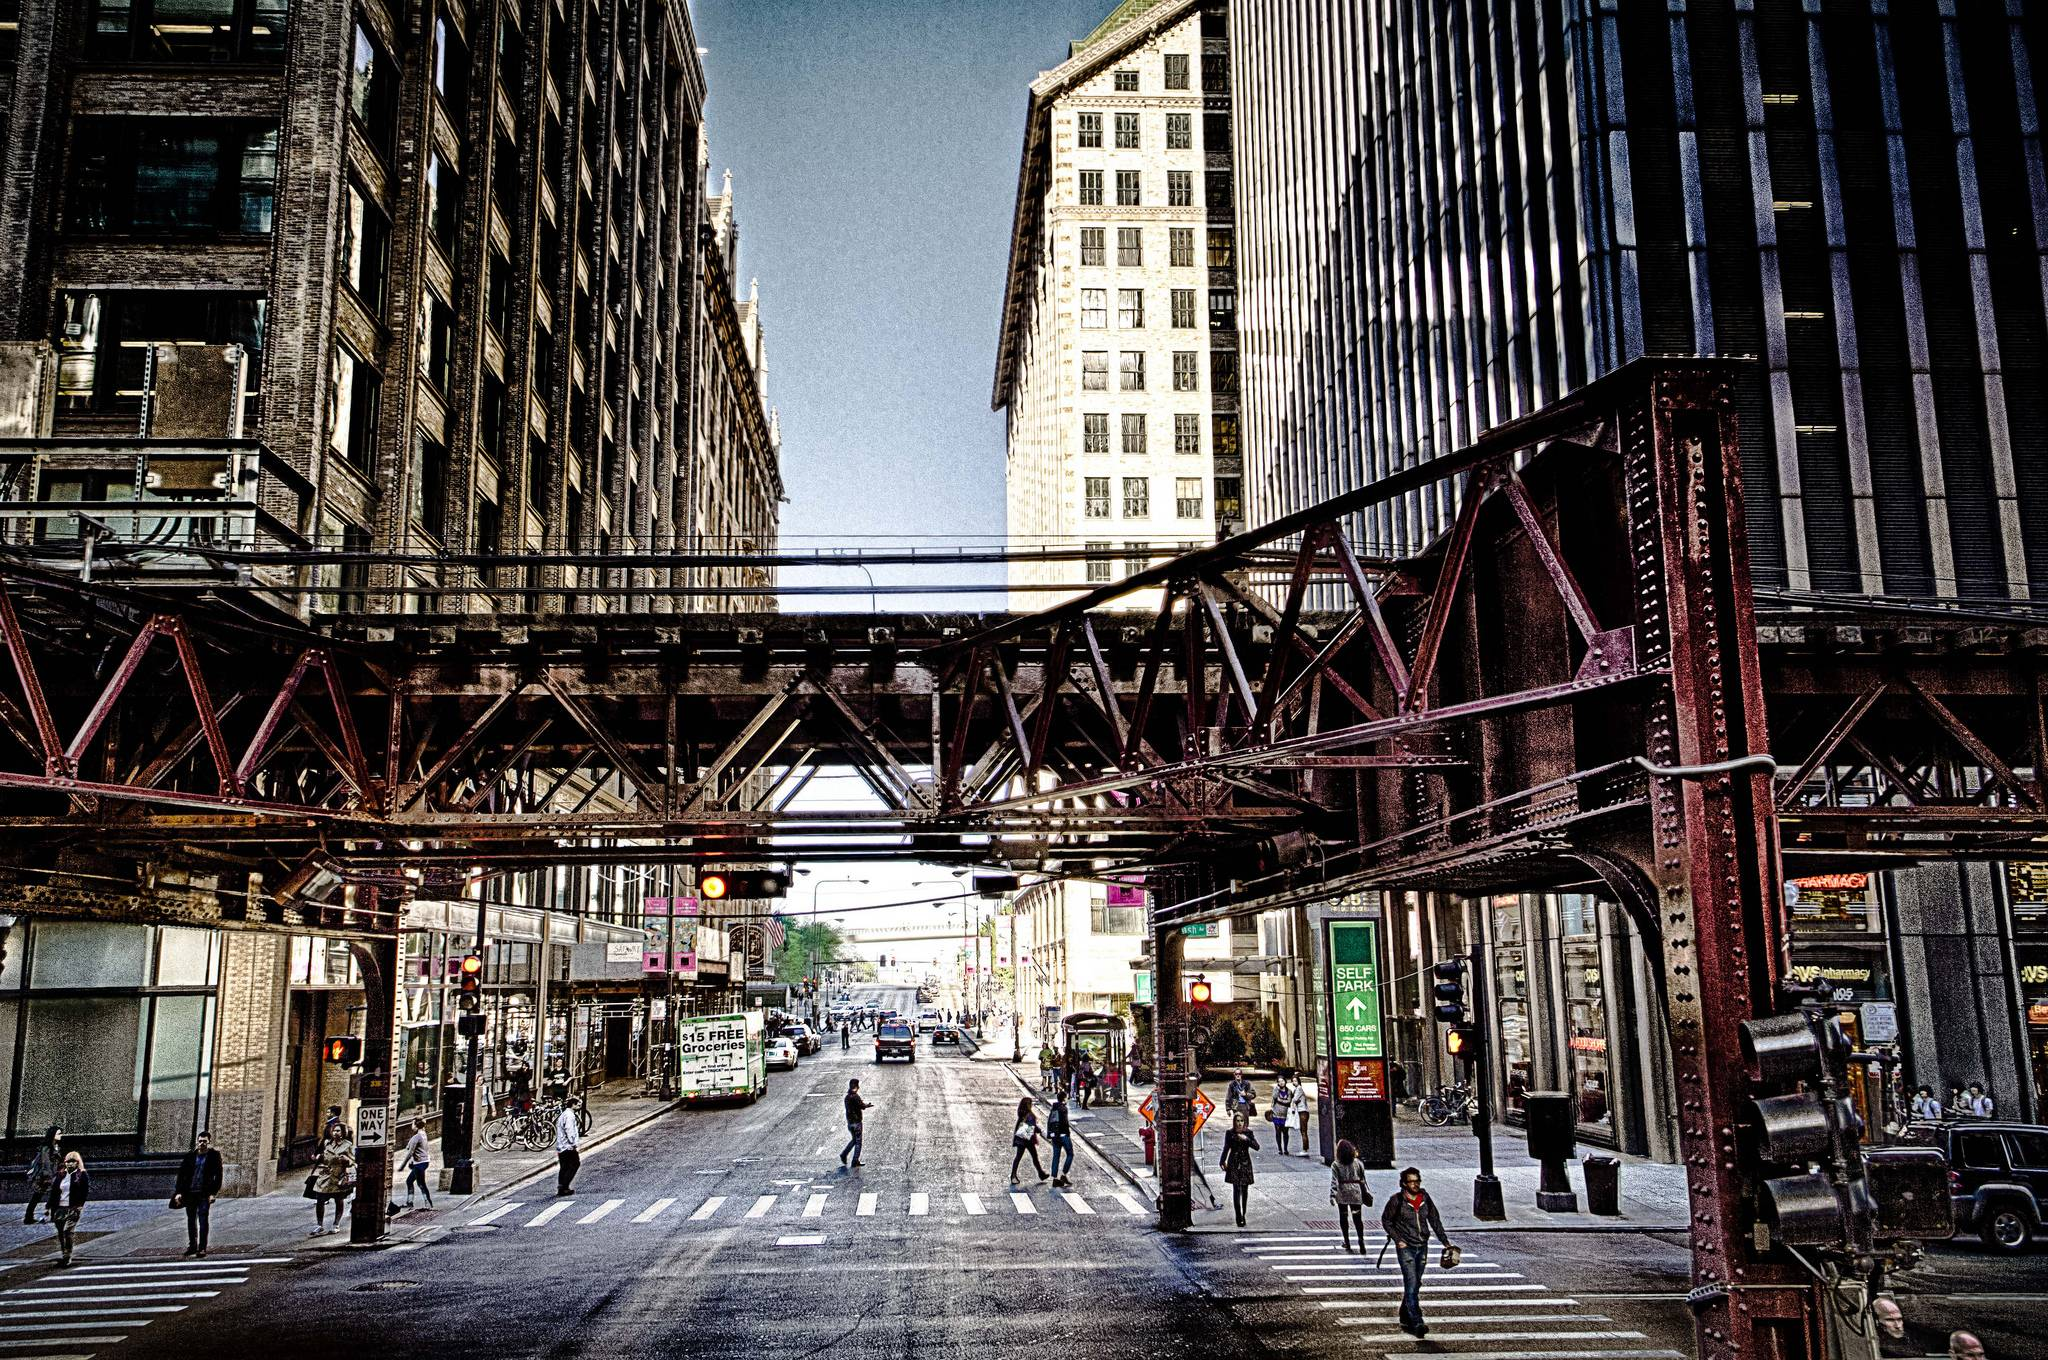 Roads Houses People Chicago city Street Cities wallpapers